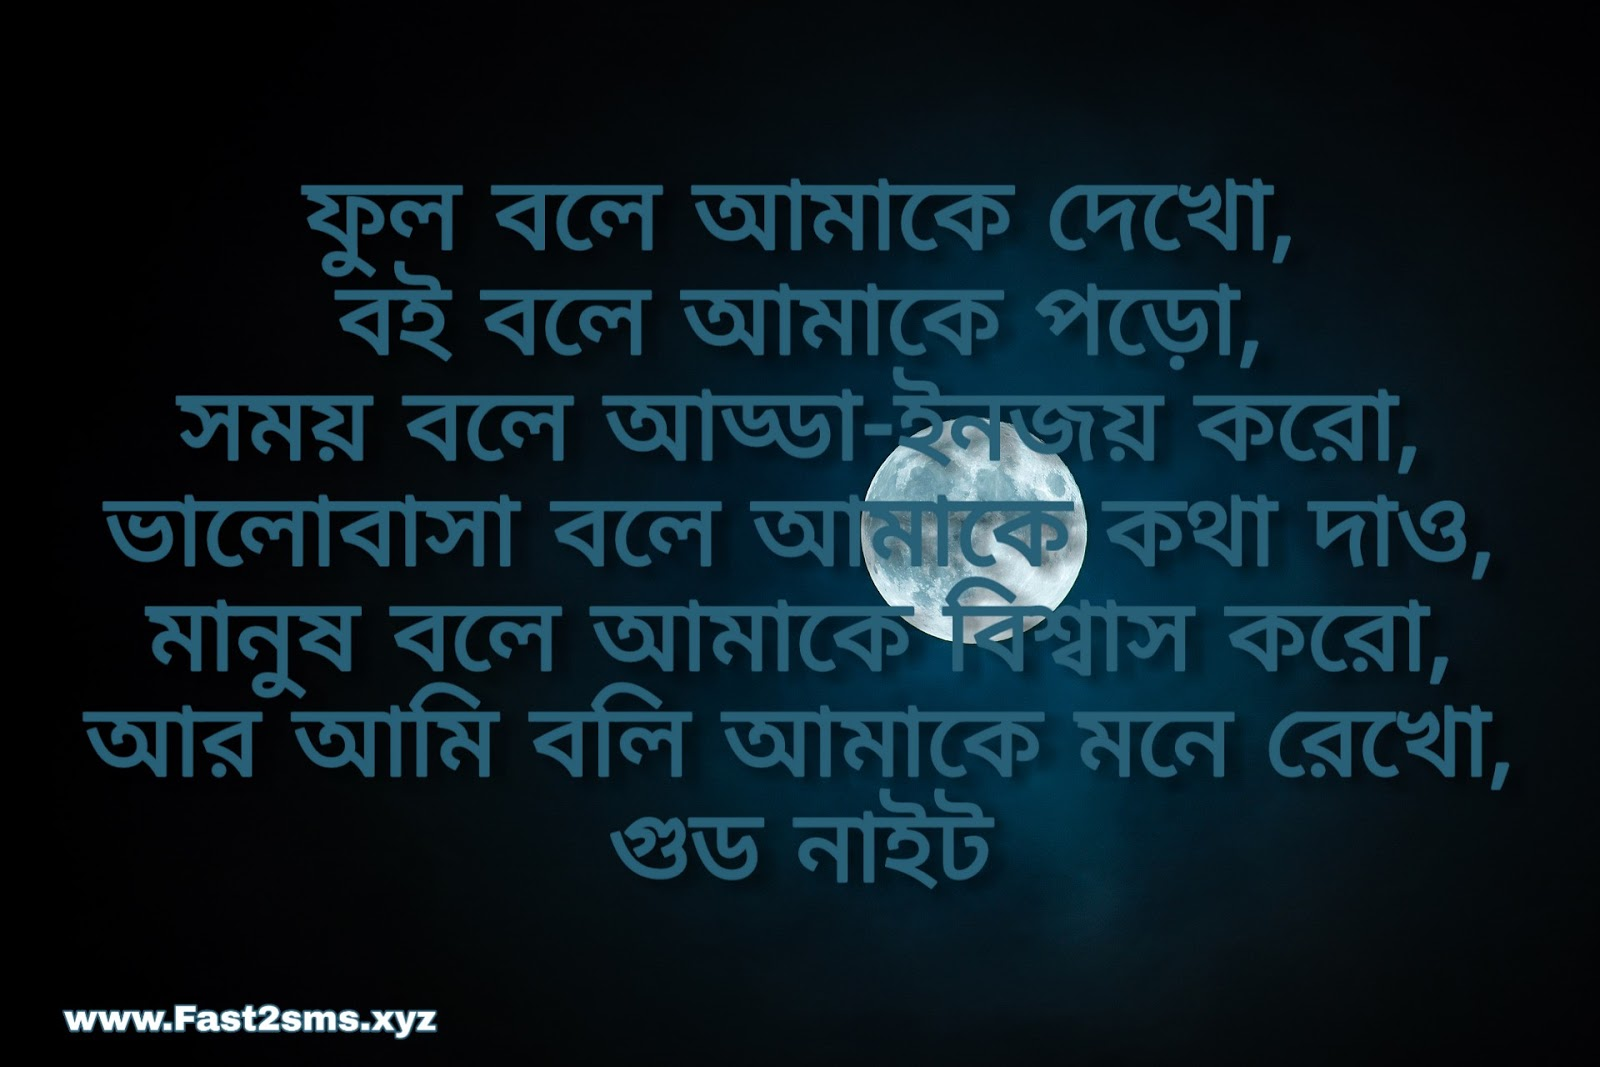 Bengali Good Night Image | Good Night Bangla SMS By Fast2SMS